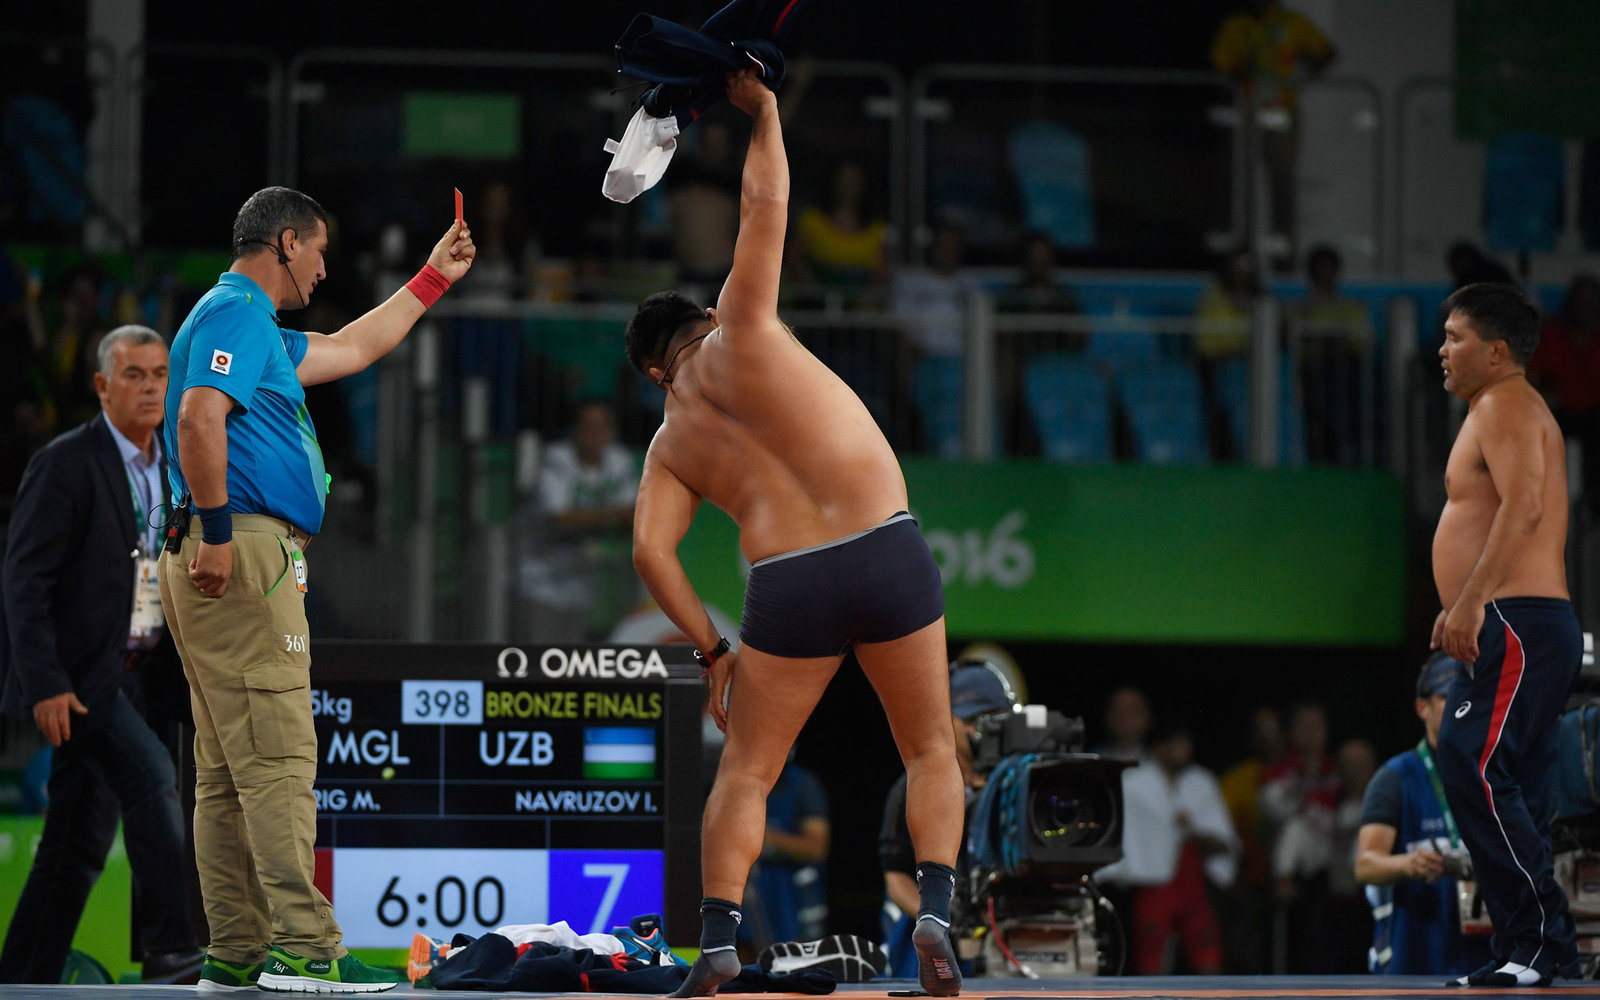 9 craziest things at Olympics